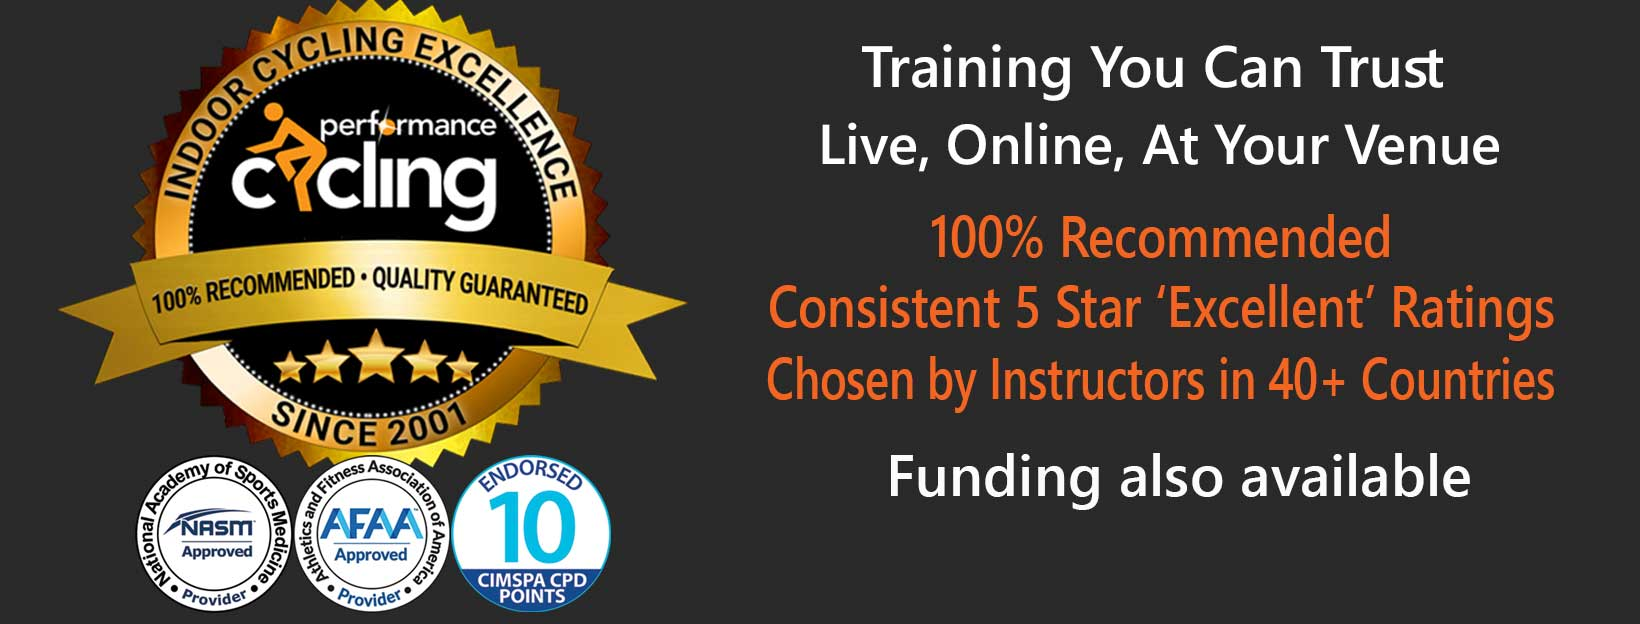 Performance Cycling - 100% recommended, UK and USA approved indoor cycling training